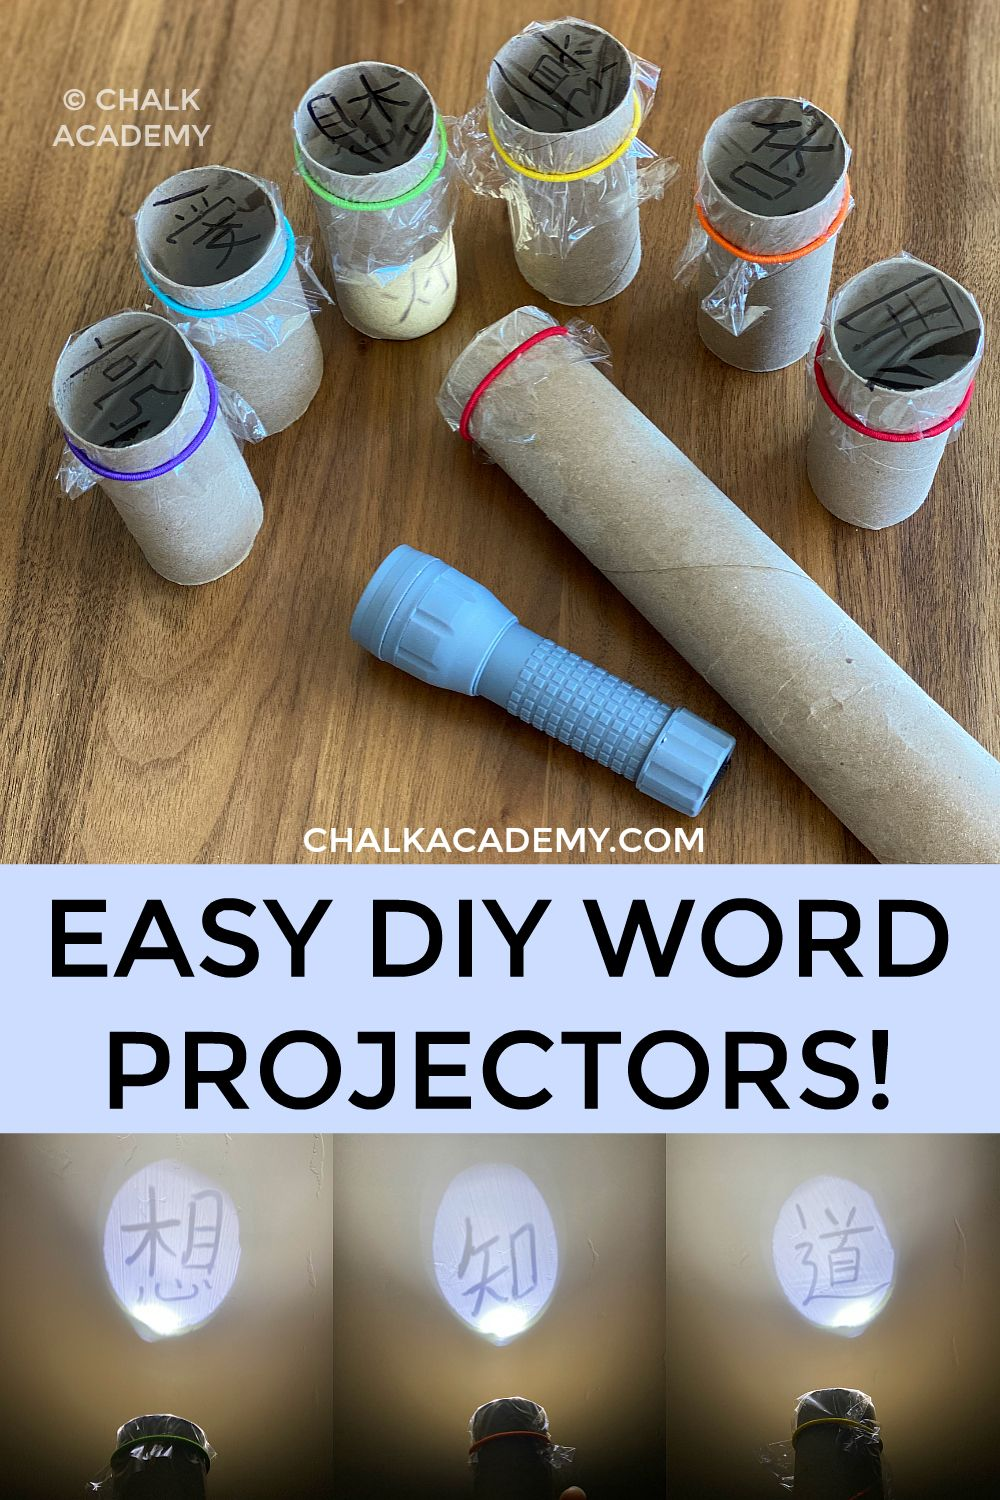 DIY Cardboard Roll Projector Word Shadow Show!